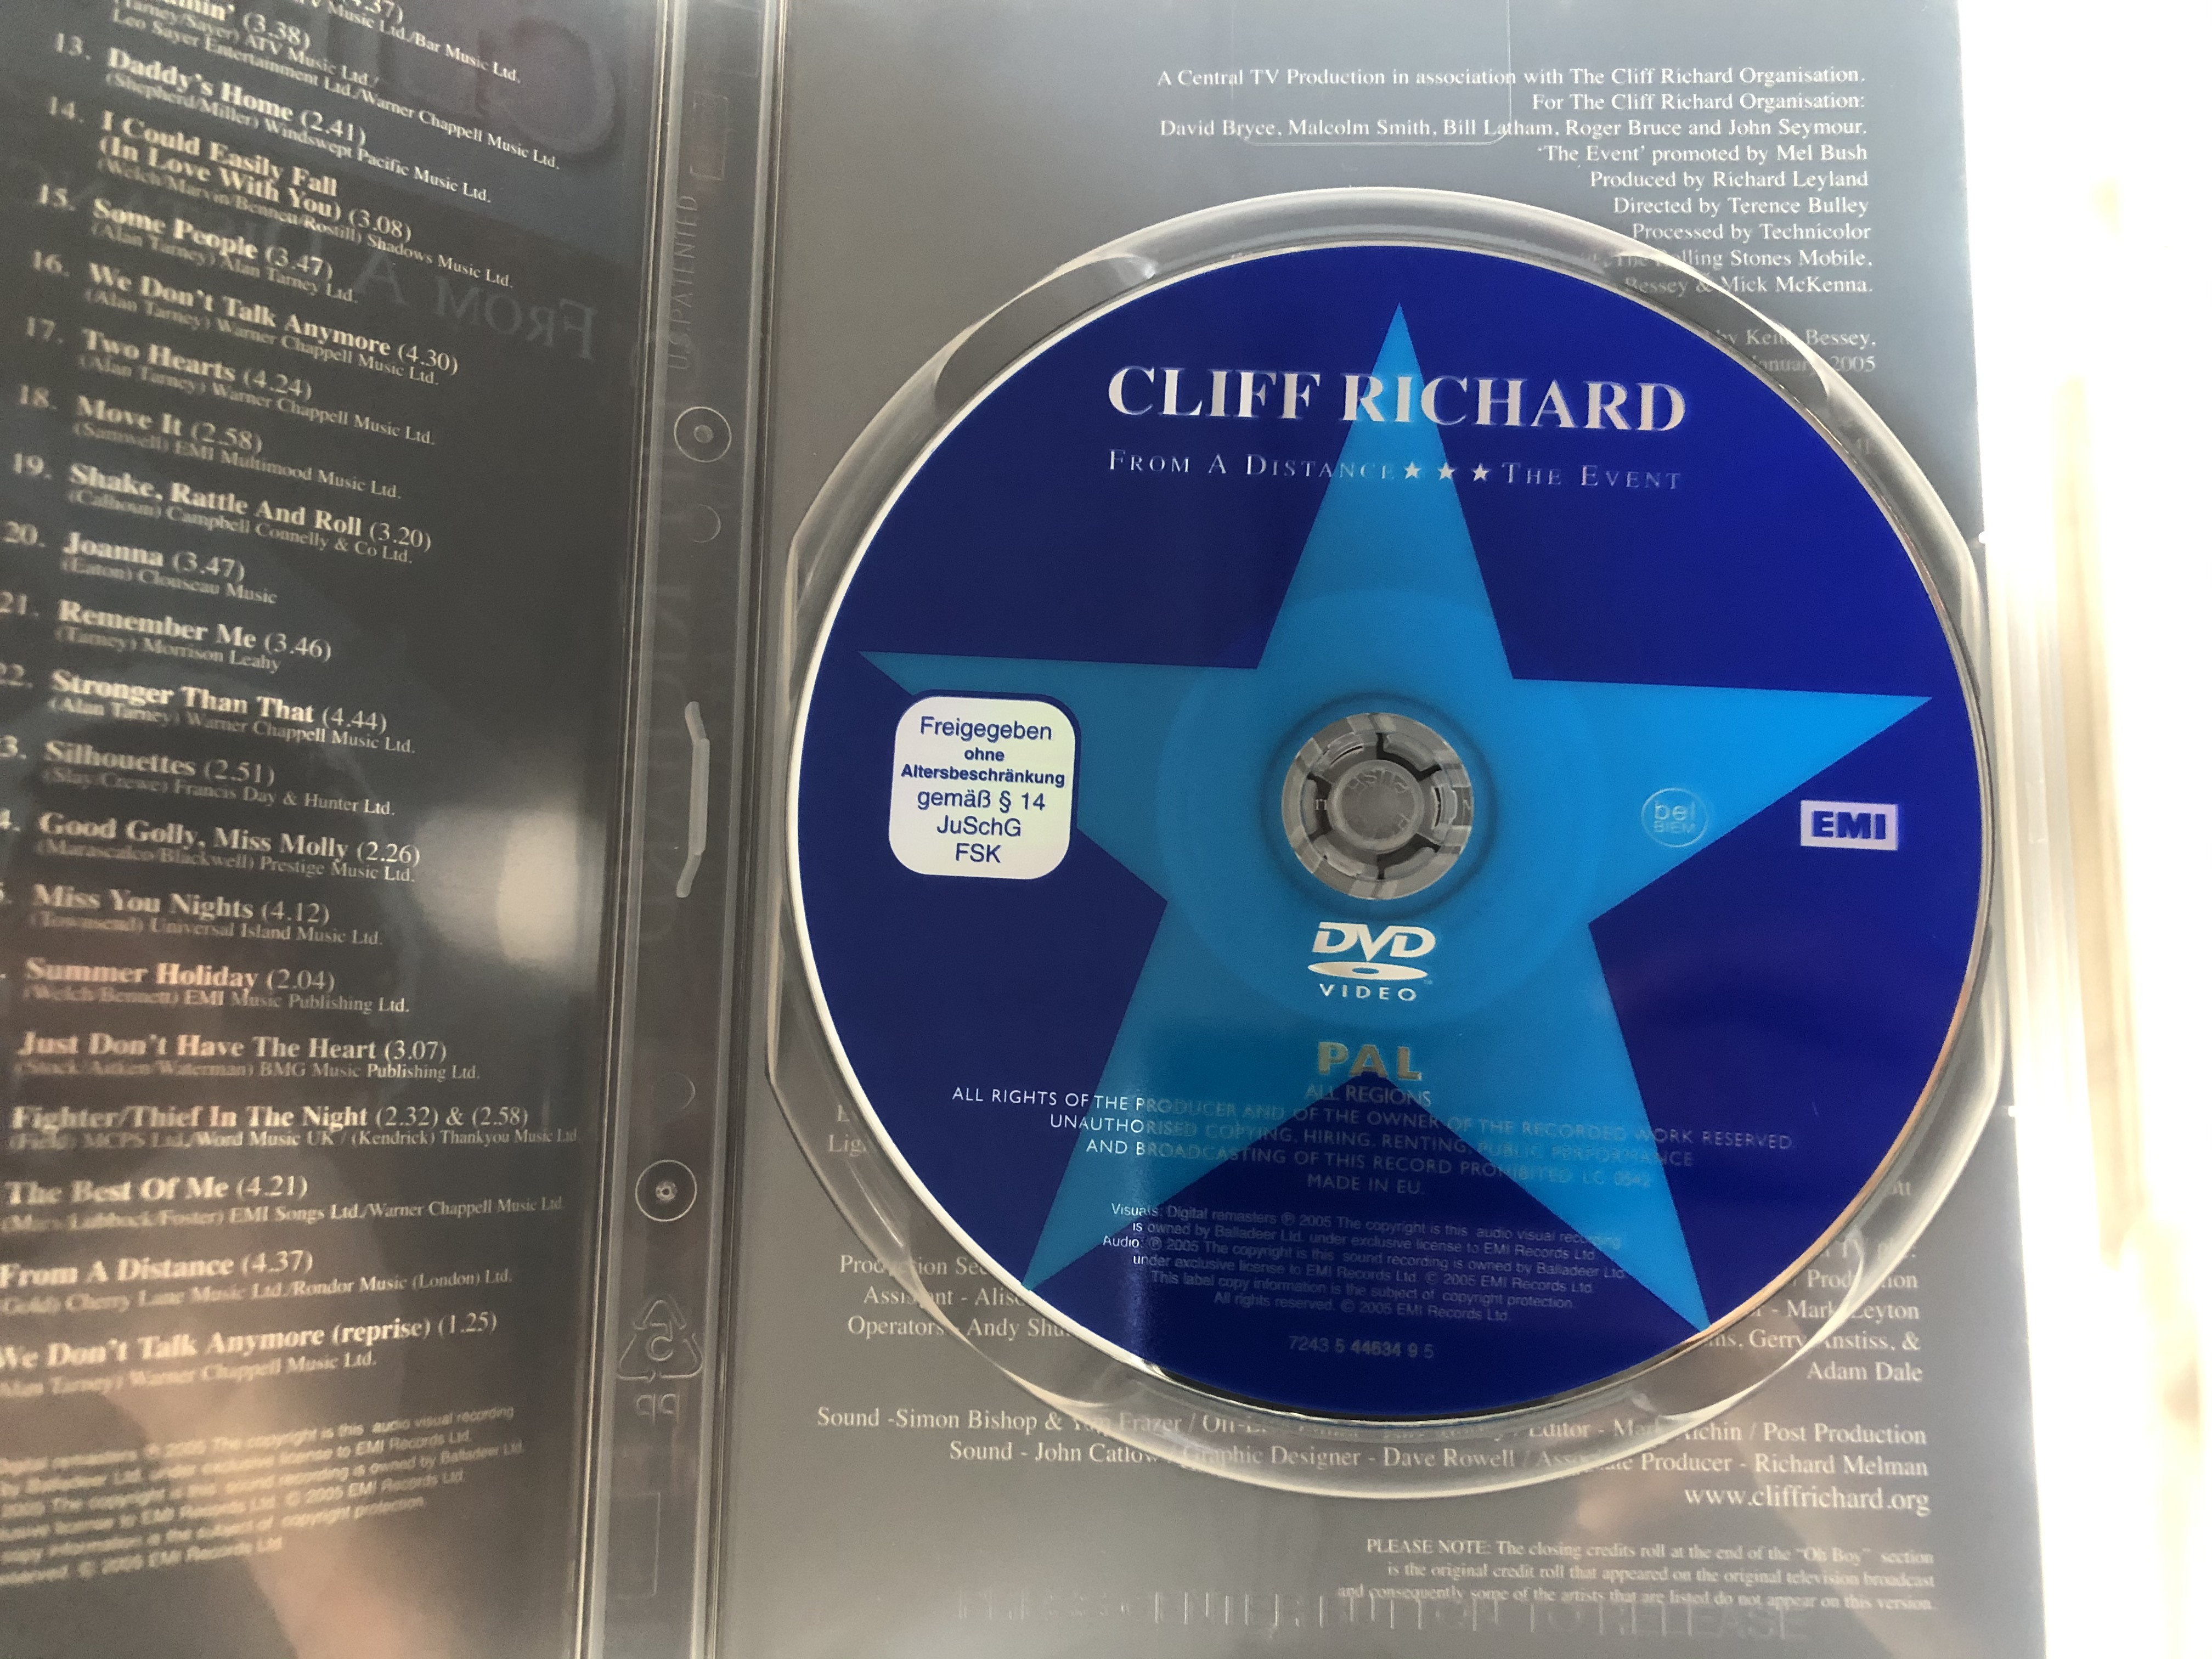 cliff-richard-from-a-distance-dvd-the-event-2.jpg